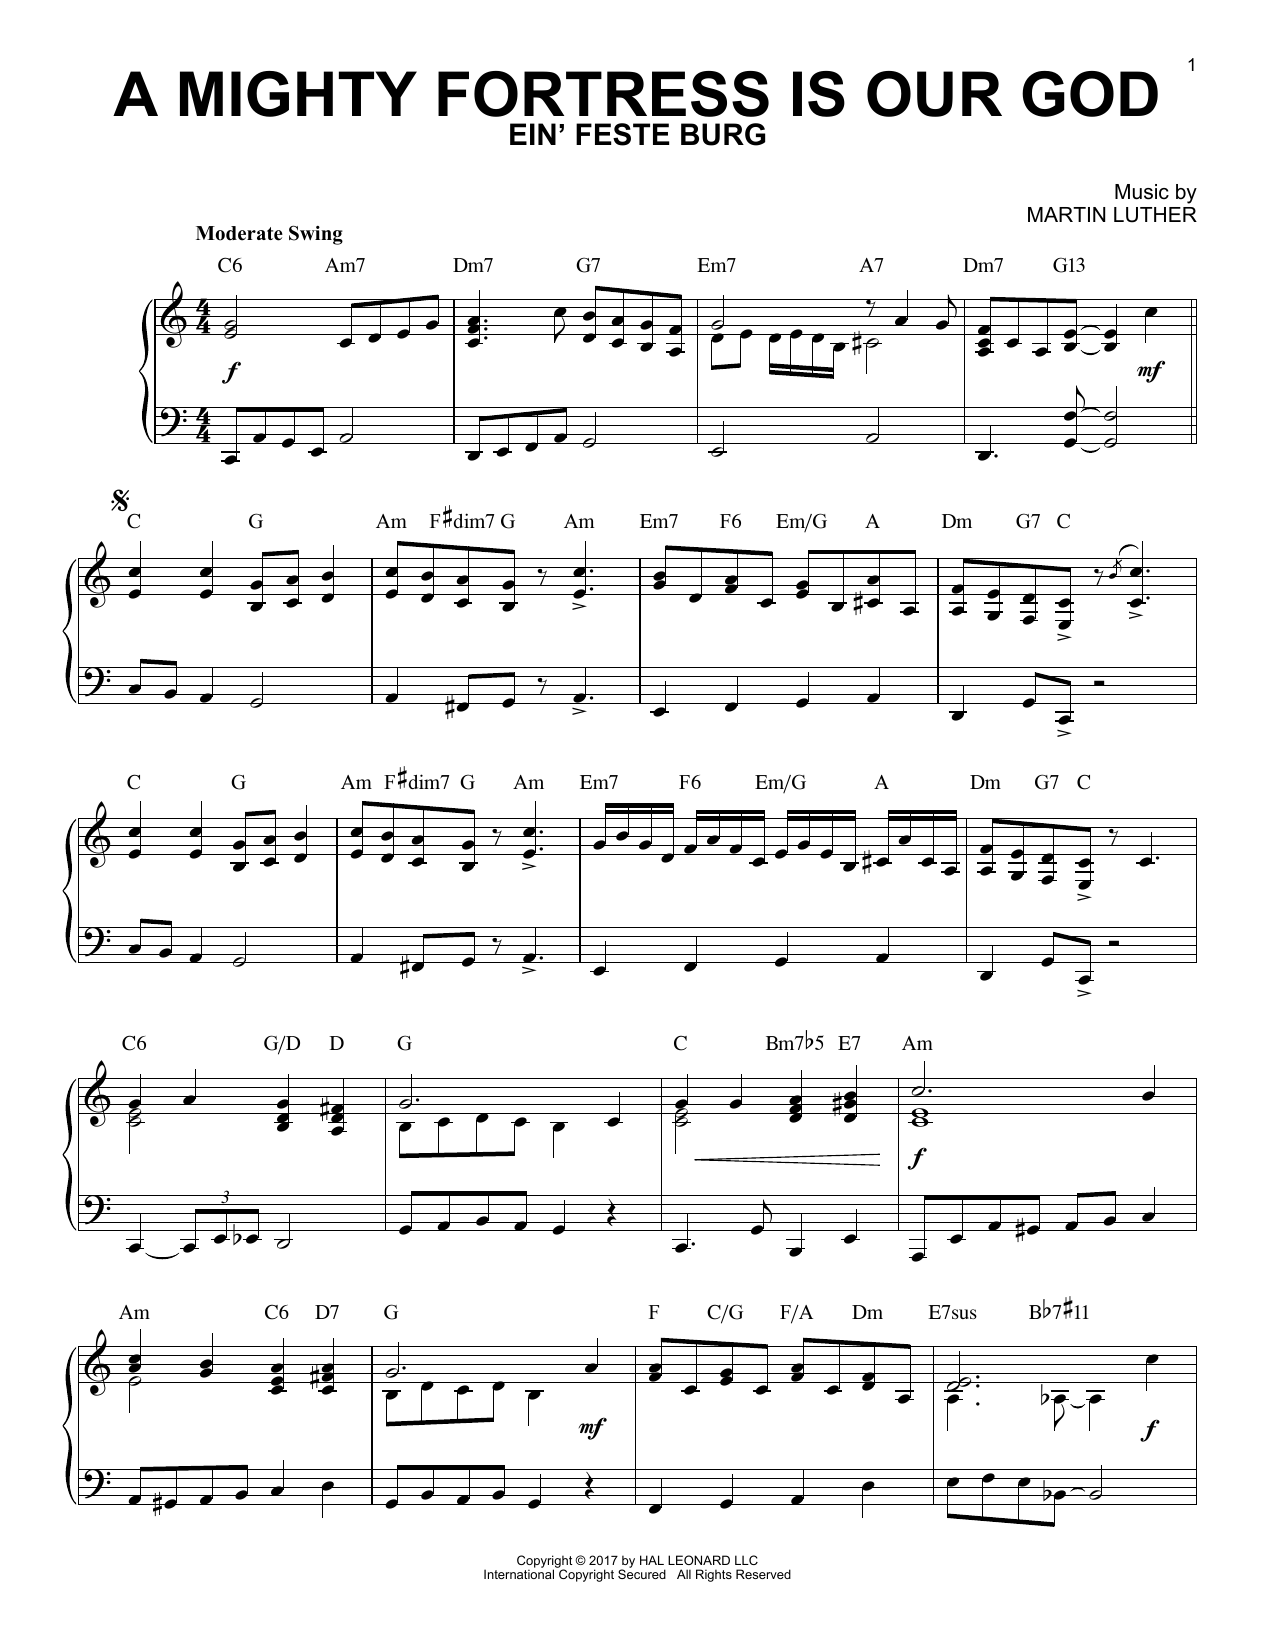 Frederick H. Hedge A Mighty Fortress Is Our God [Jazz version] sheet music notes and chords. Download Printable PDF.